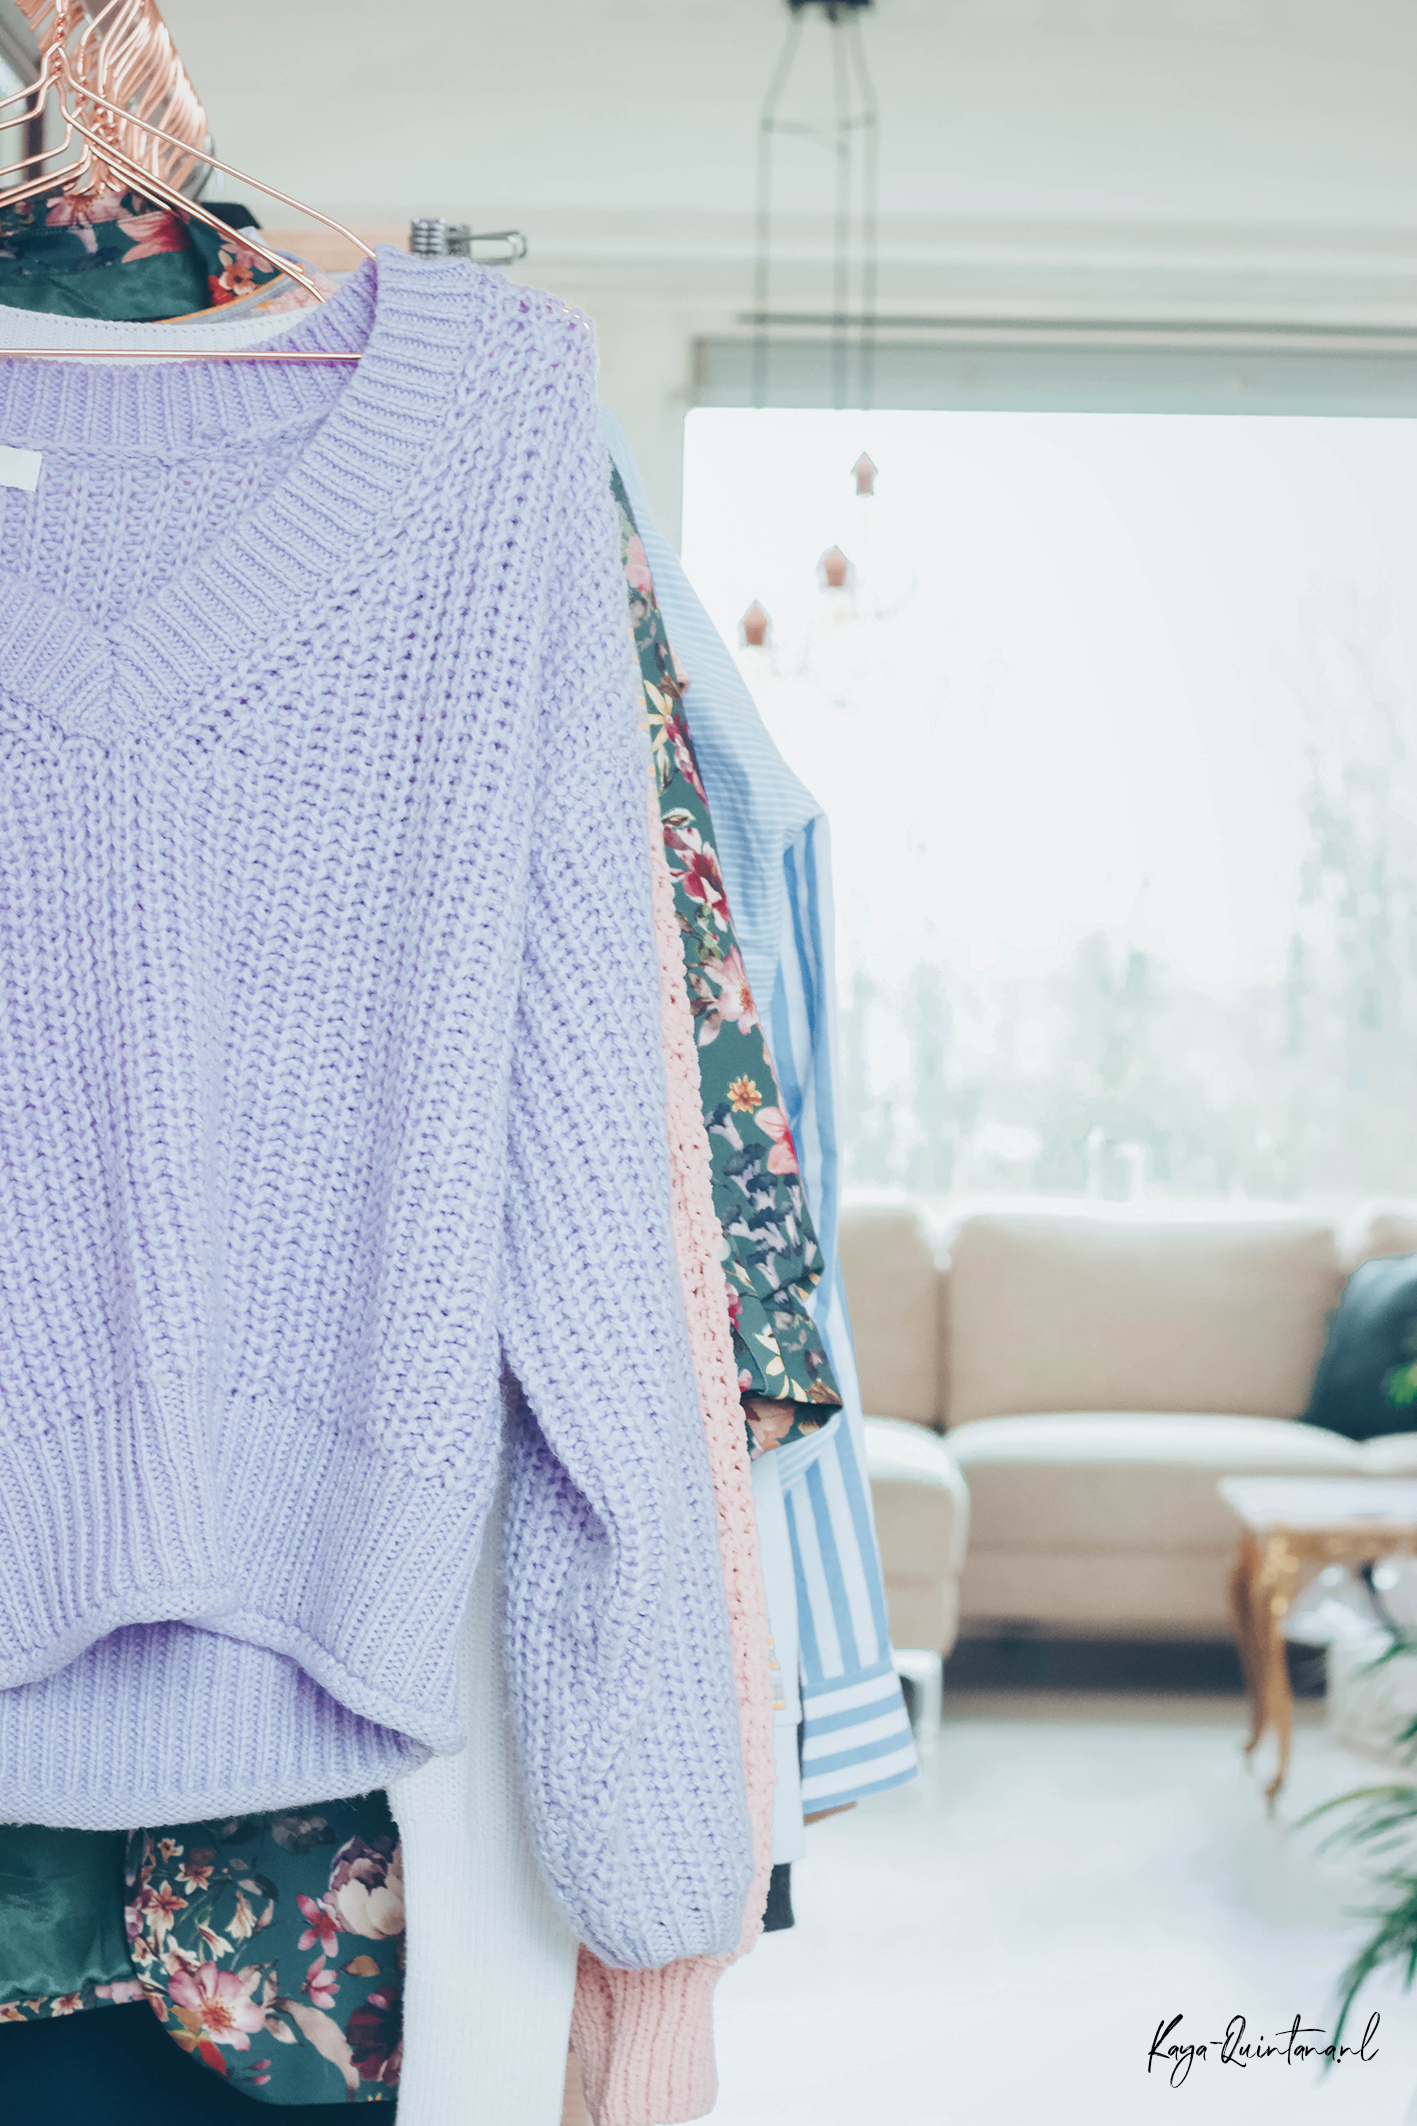 What I learned from having a capsule wardrobe